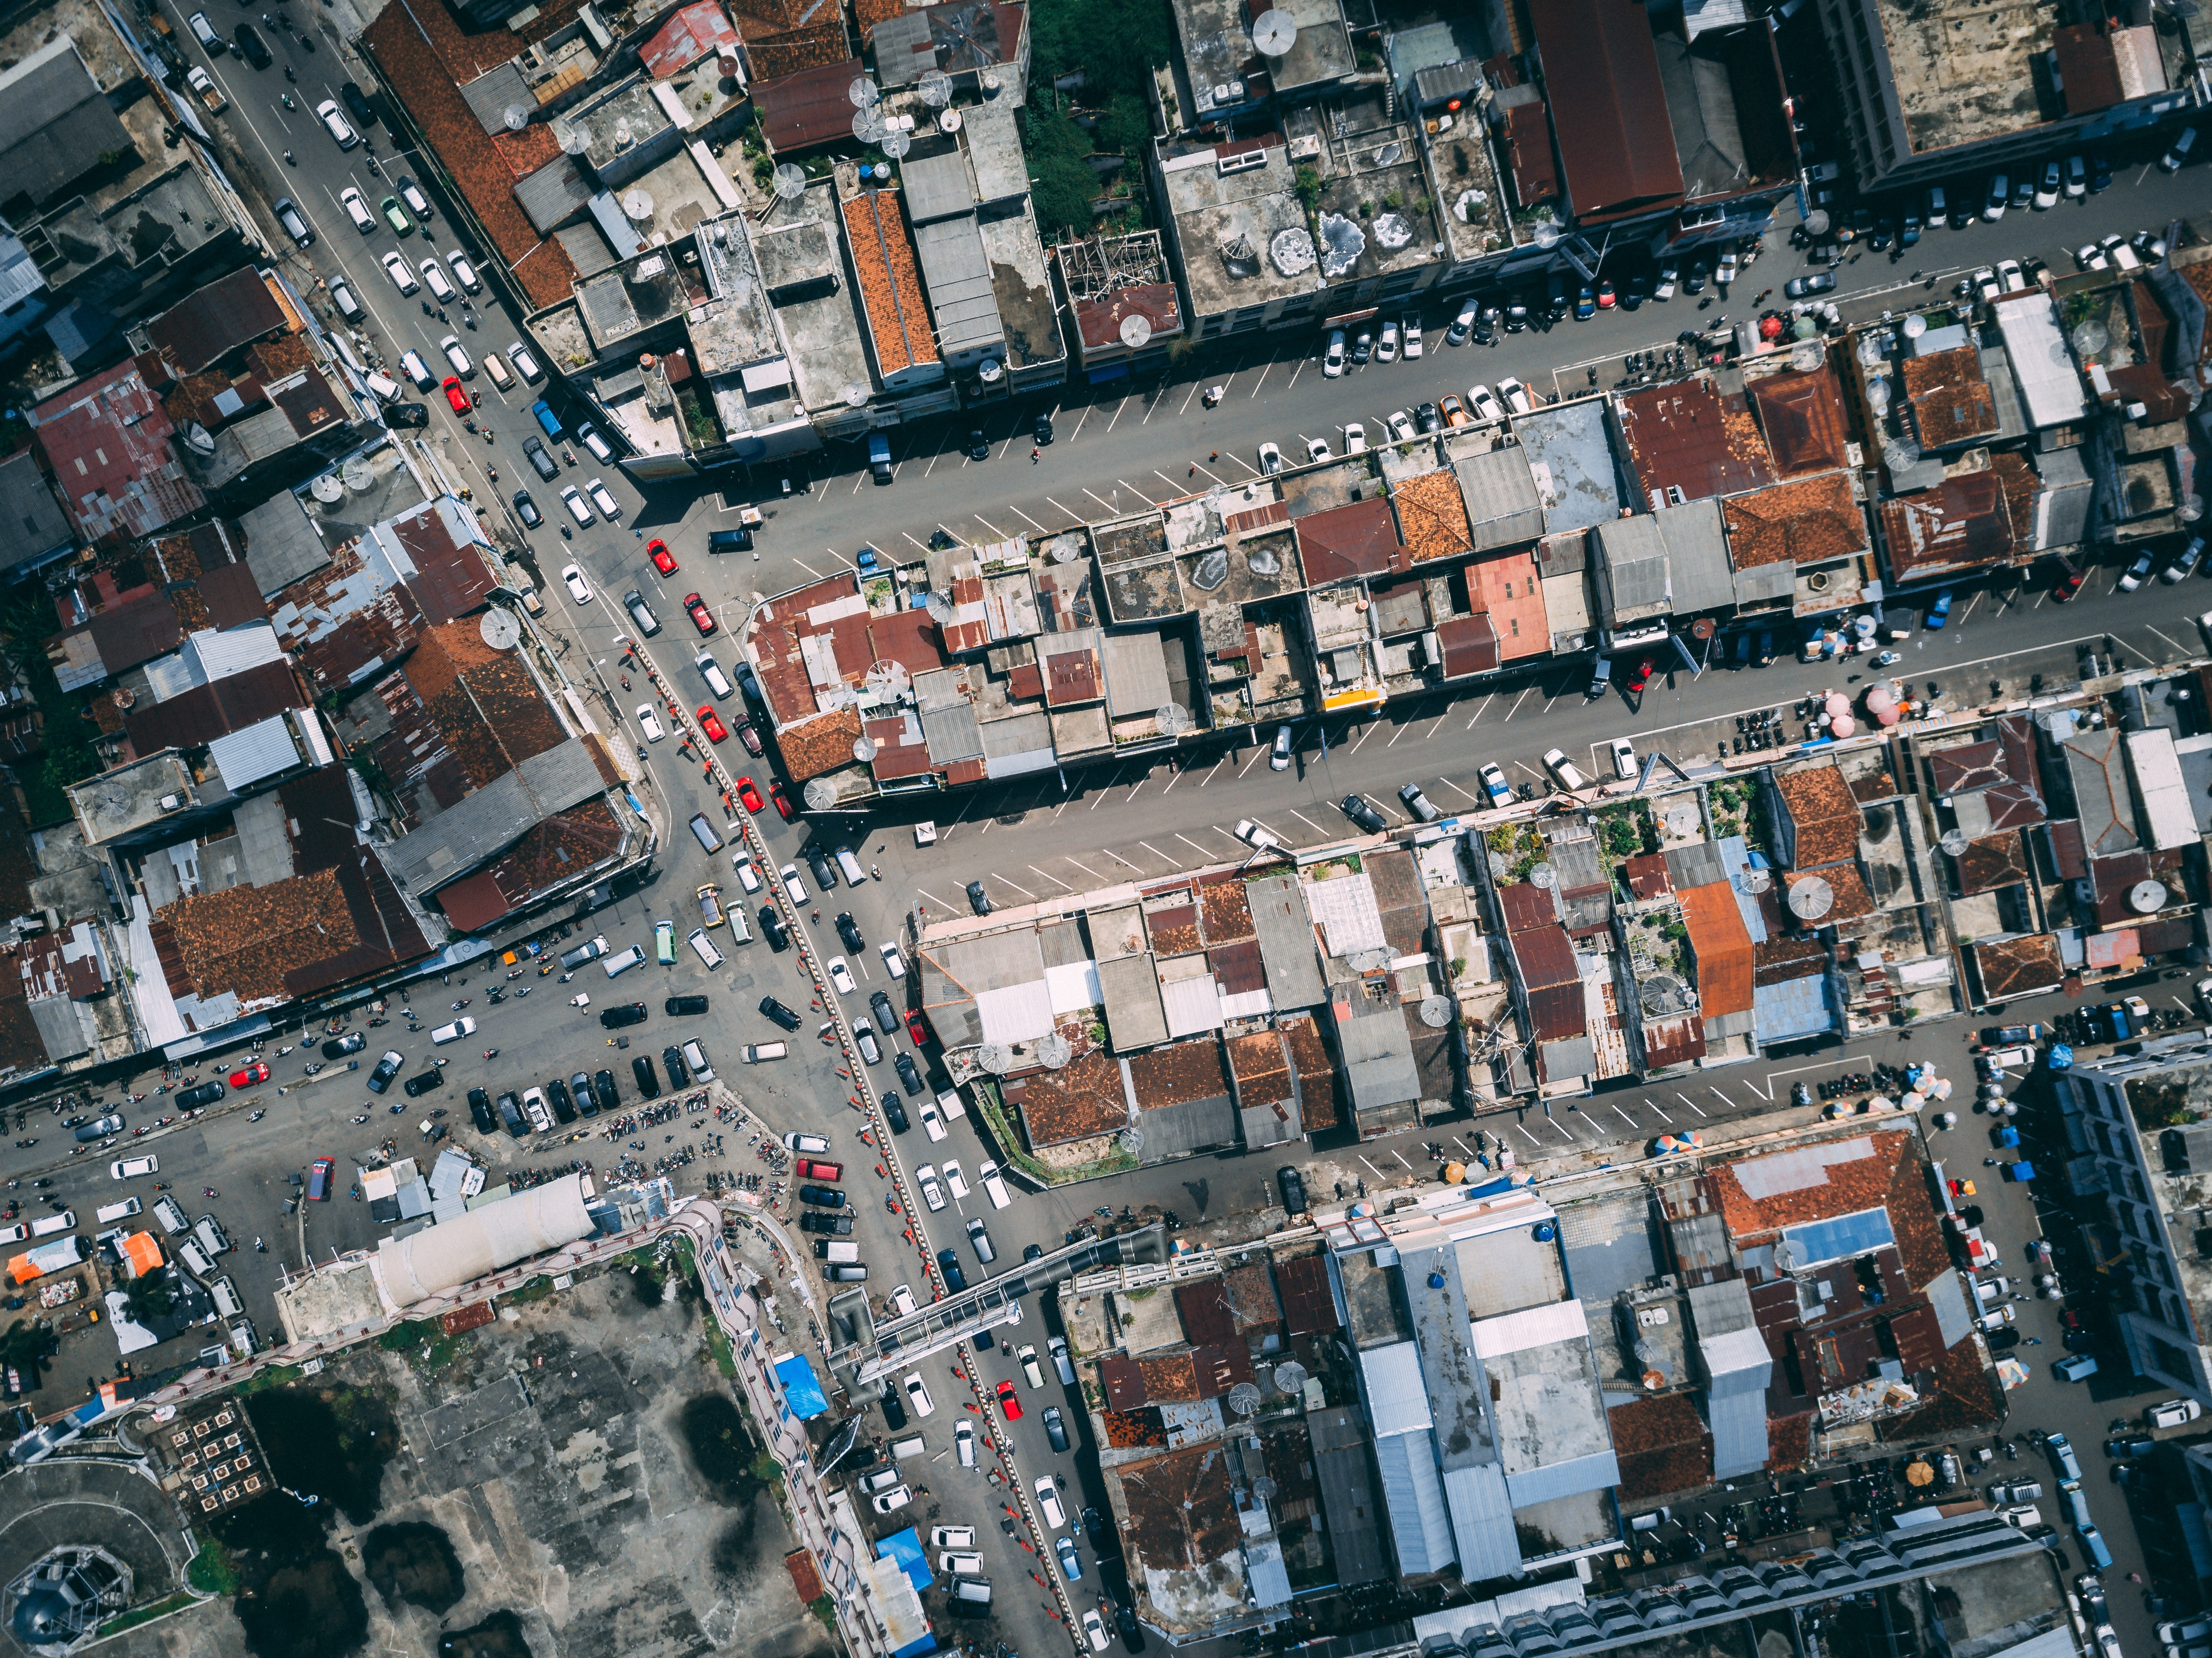 Birds-eye image of cars on a road in a city